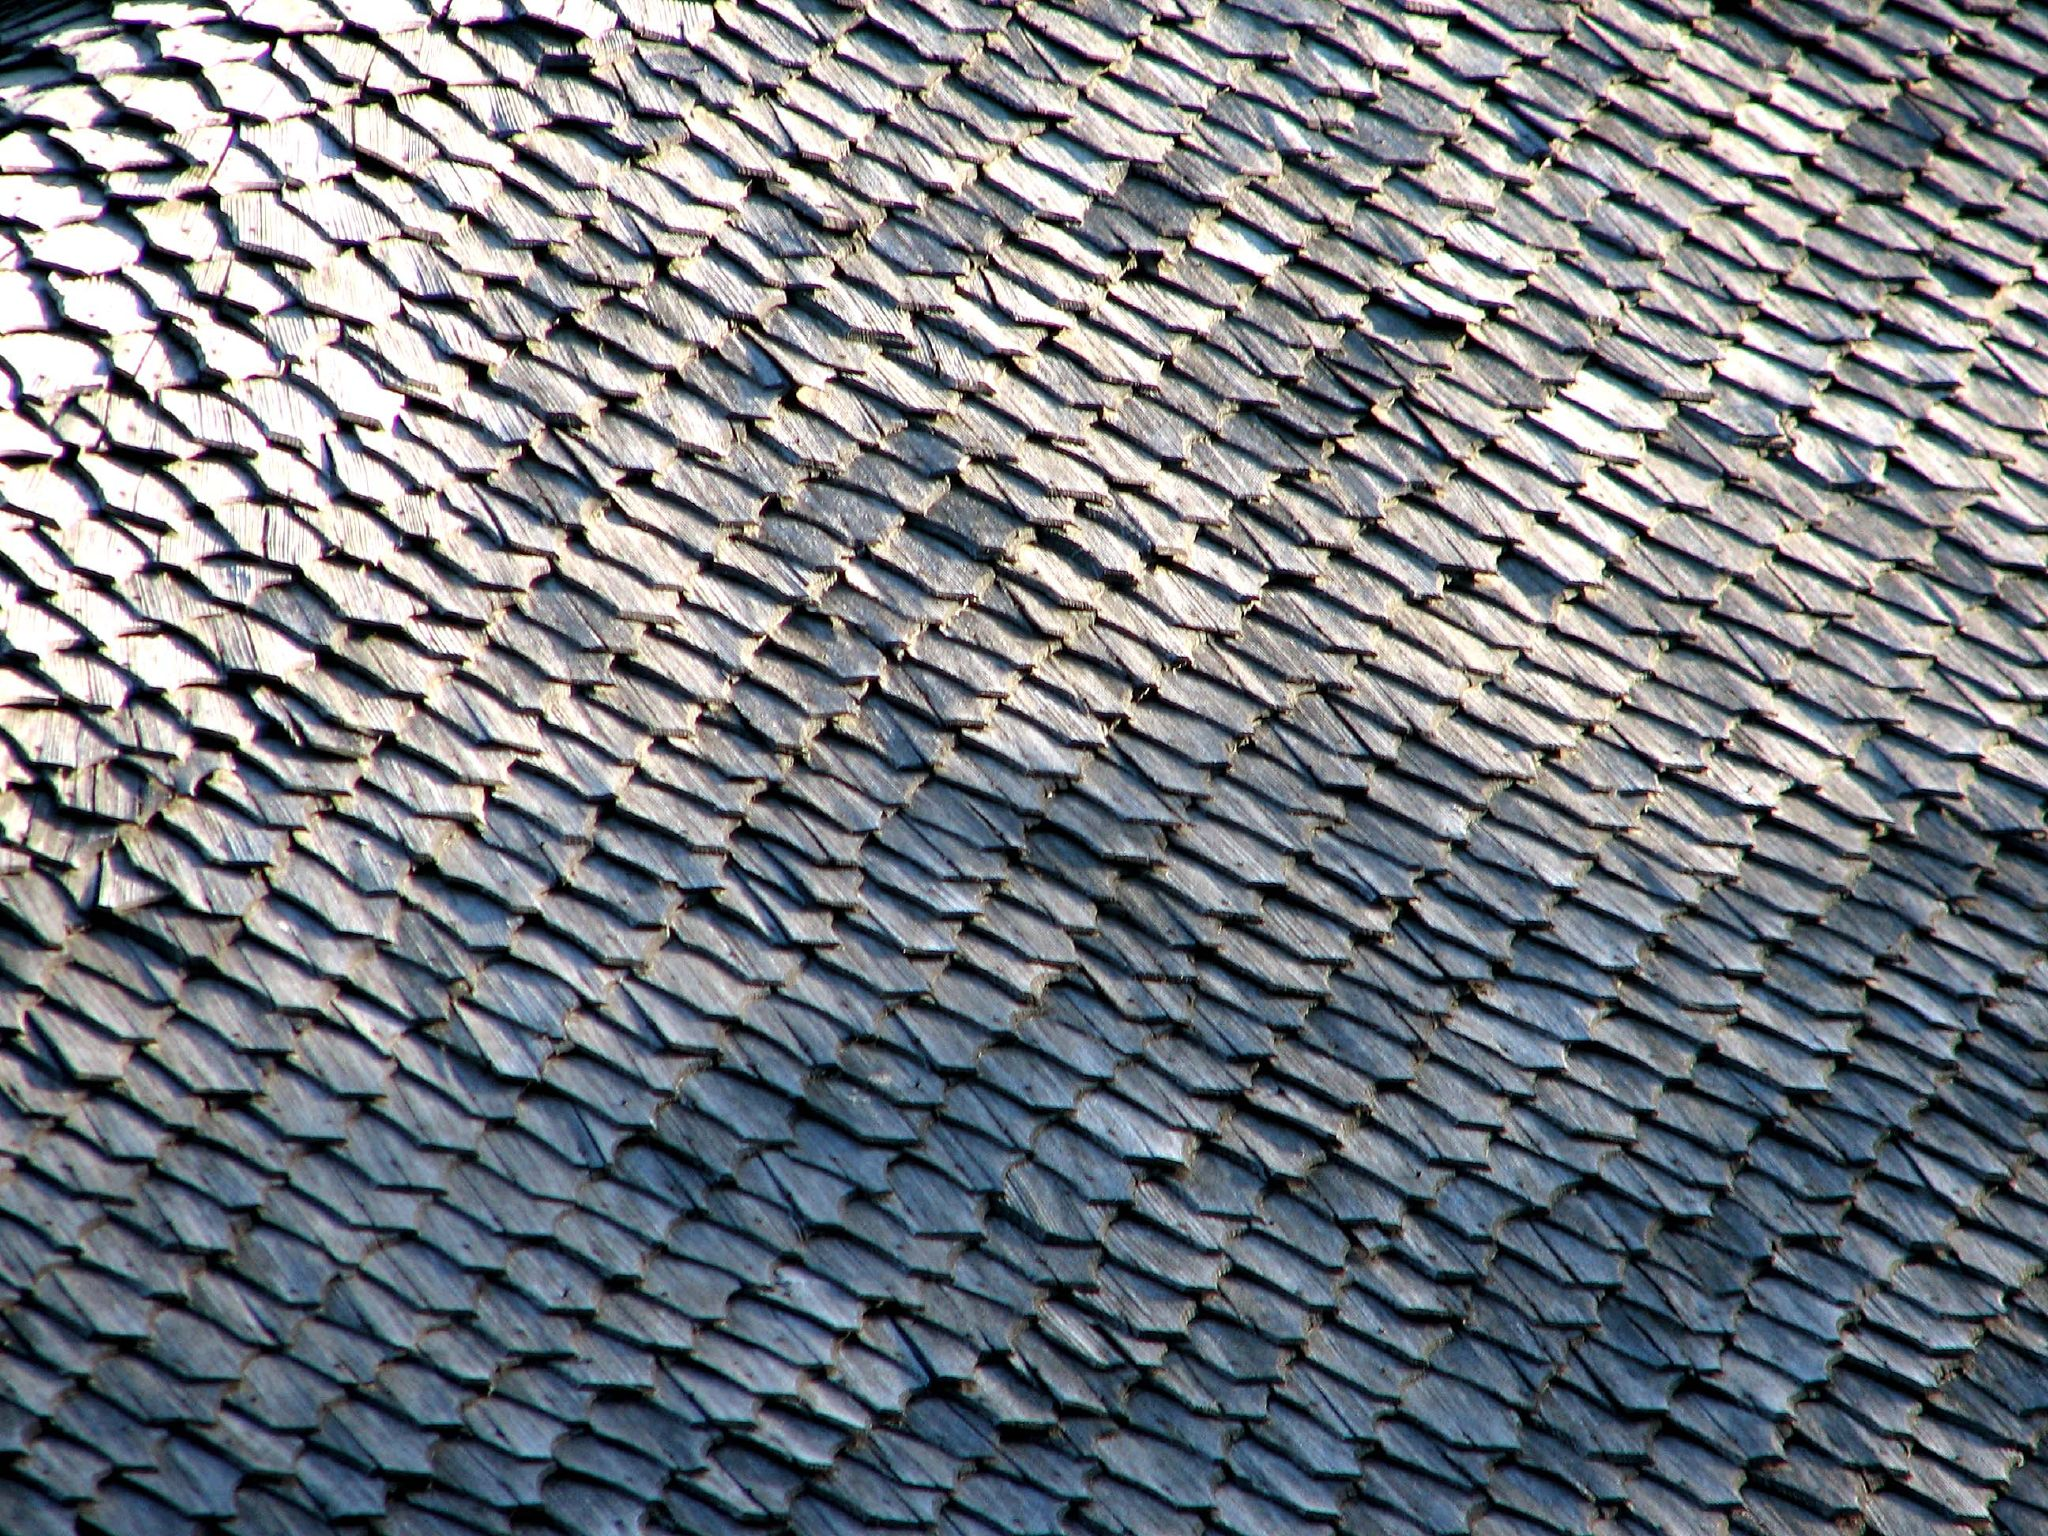 File Folk Museum Roof Shingles 03 2477538929 Jpg